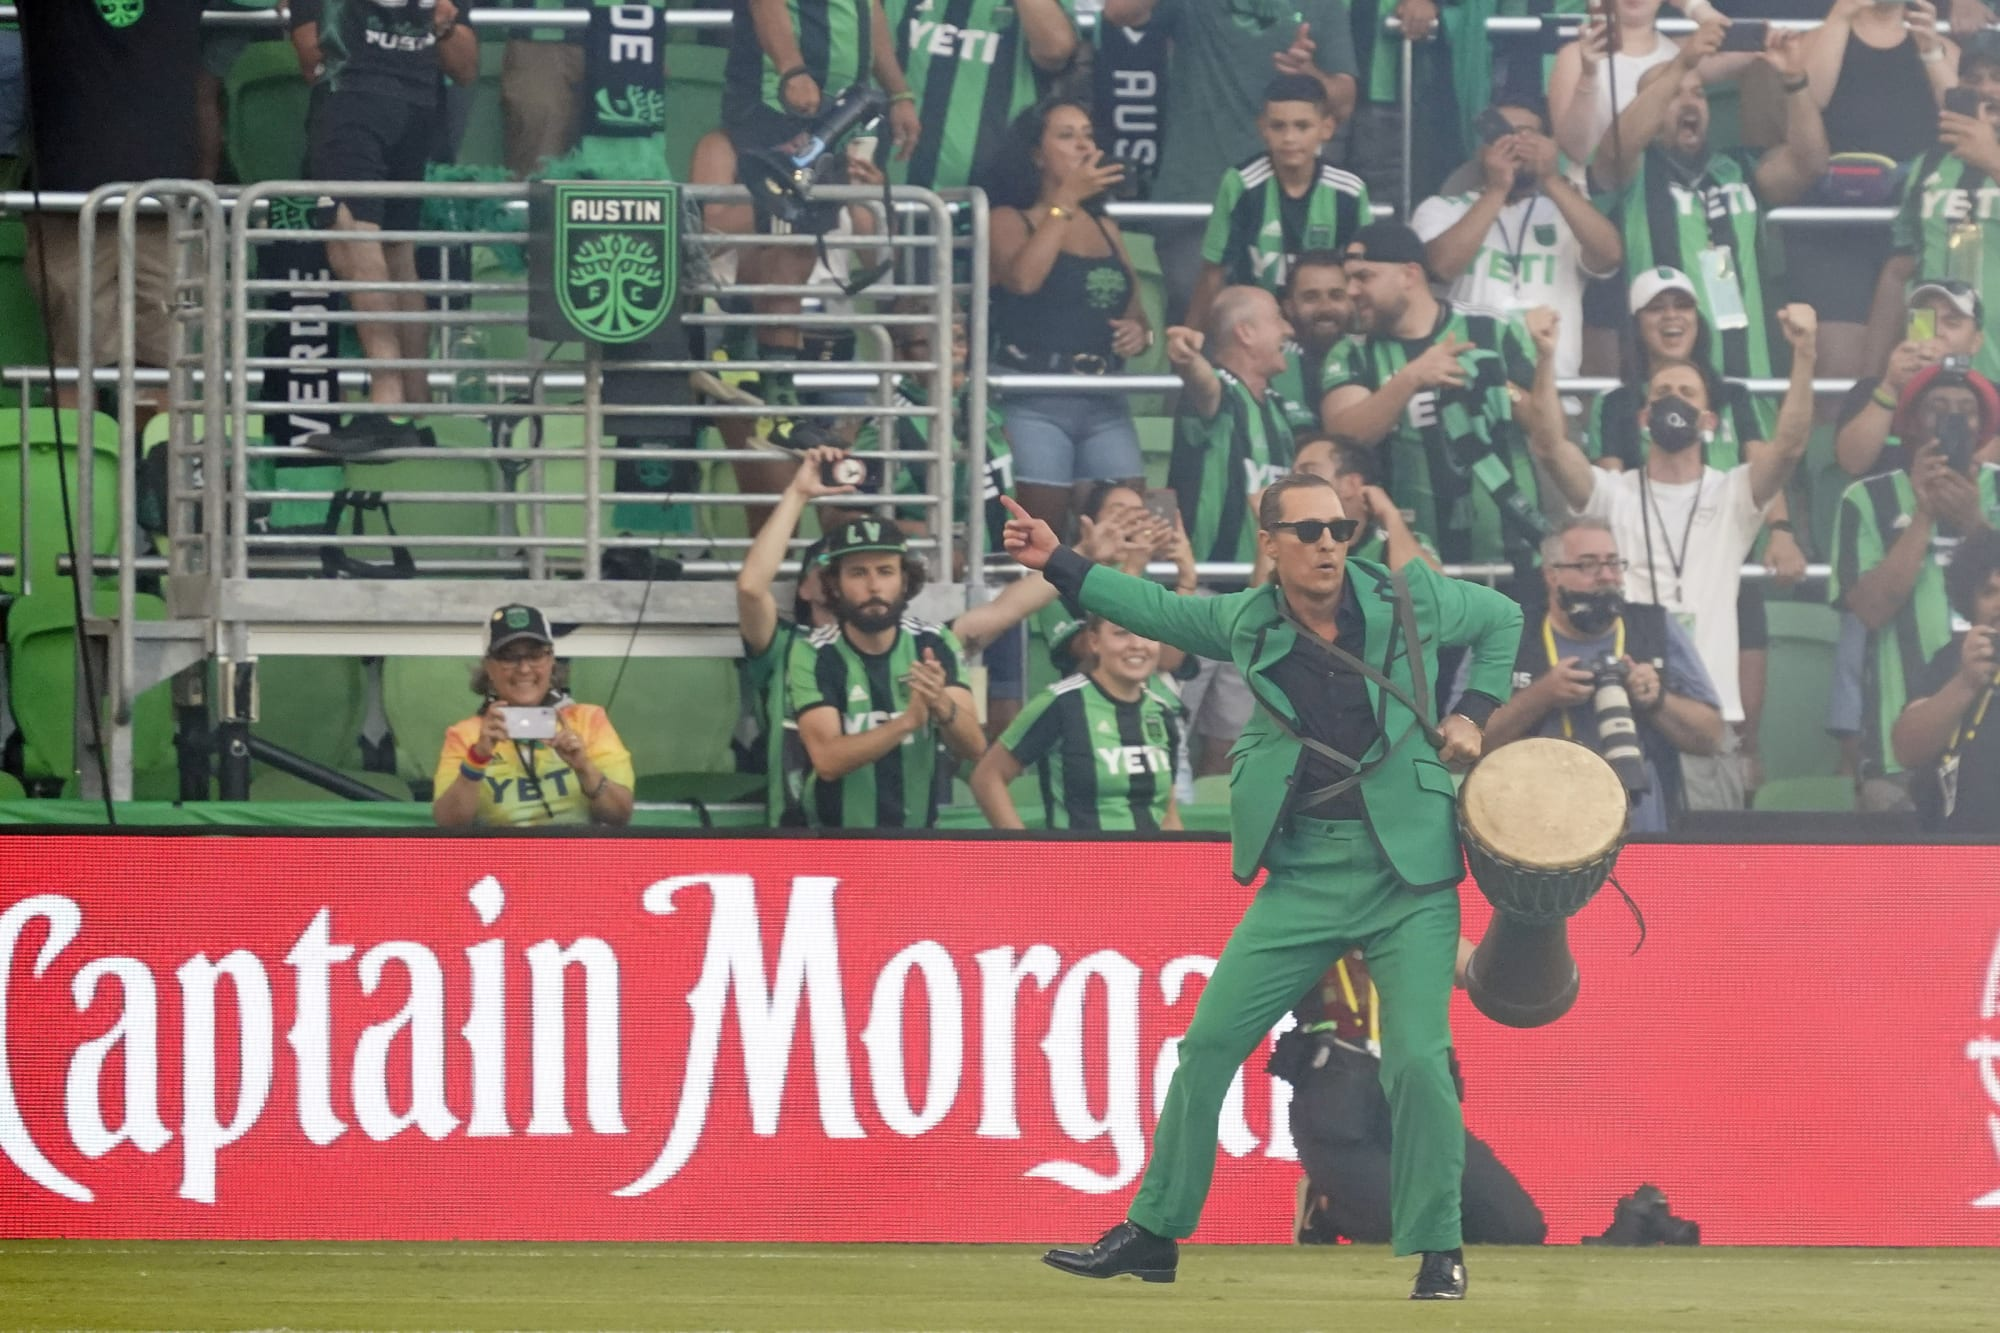 Austin FC, led by Matthew McConaughey, are creating something special